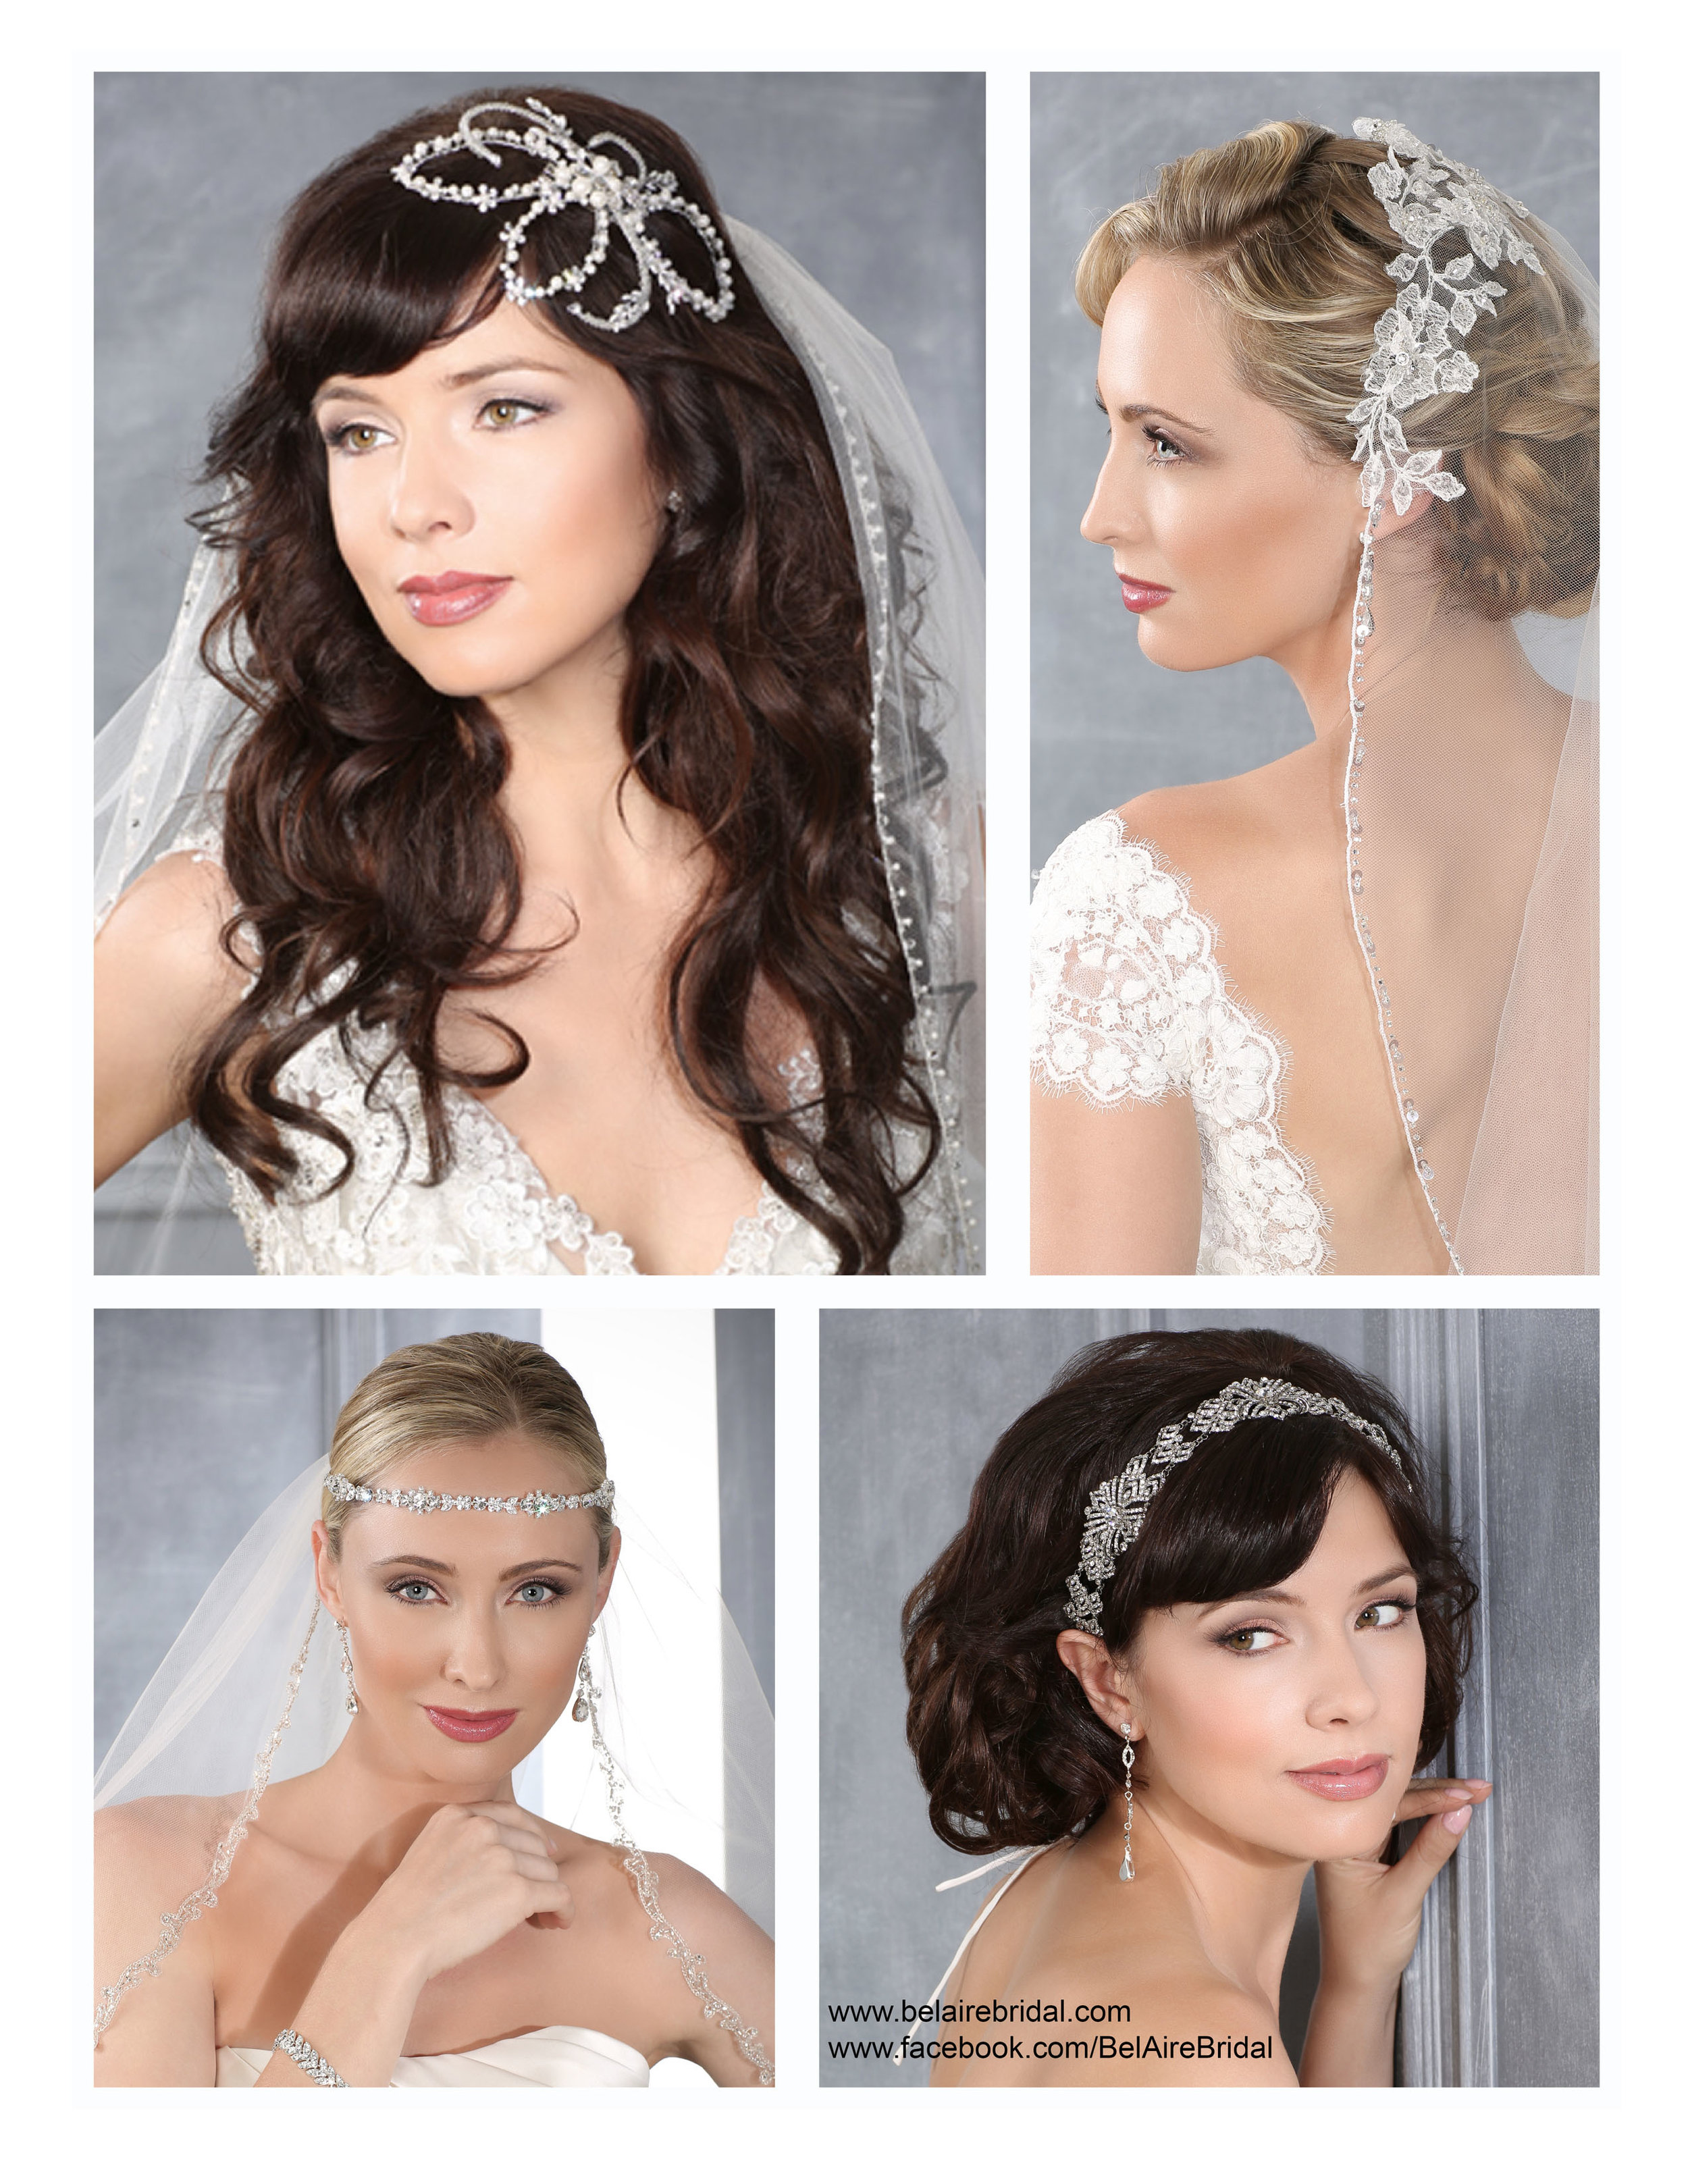 Bridal Guide Mock March April 2014-LR.jpg